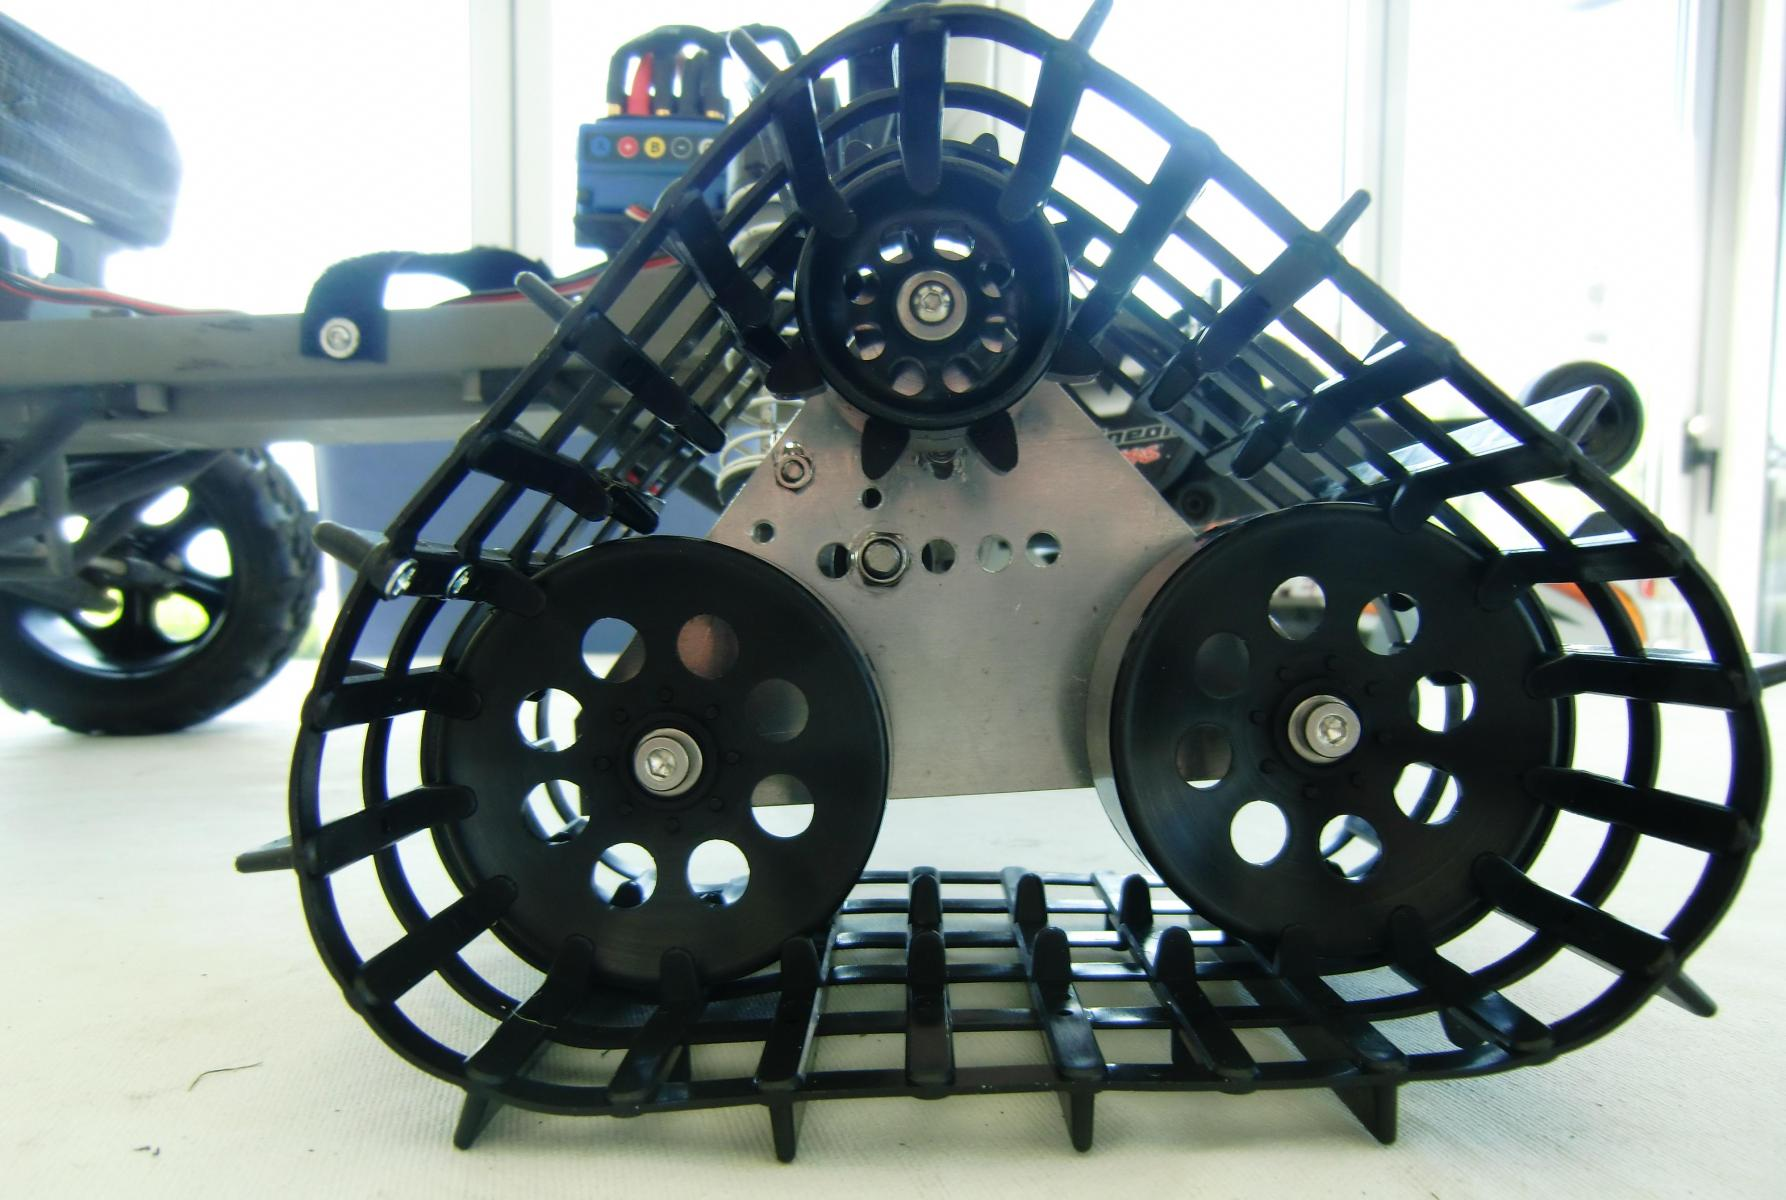 Watch moreover 280 furthermore Testors Promotional Paint Kit likewise Tires And Wheels as well 397241. on traxxas rc cars